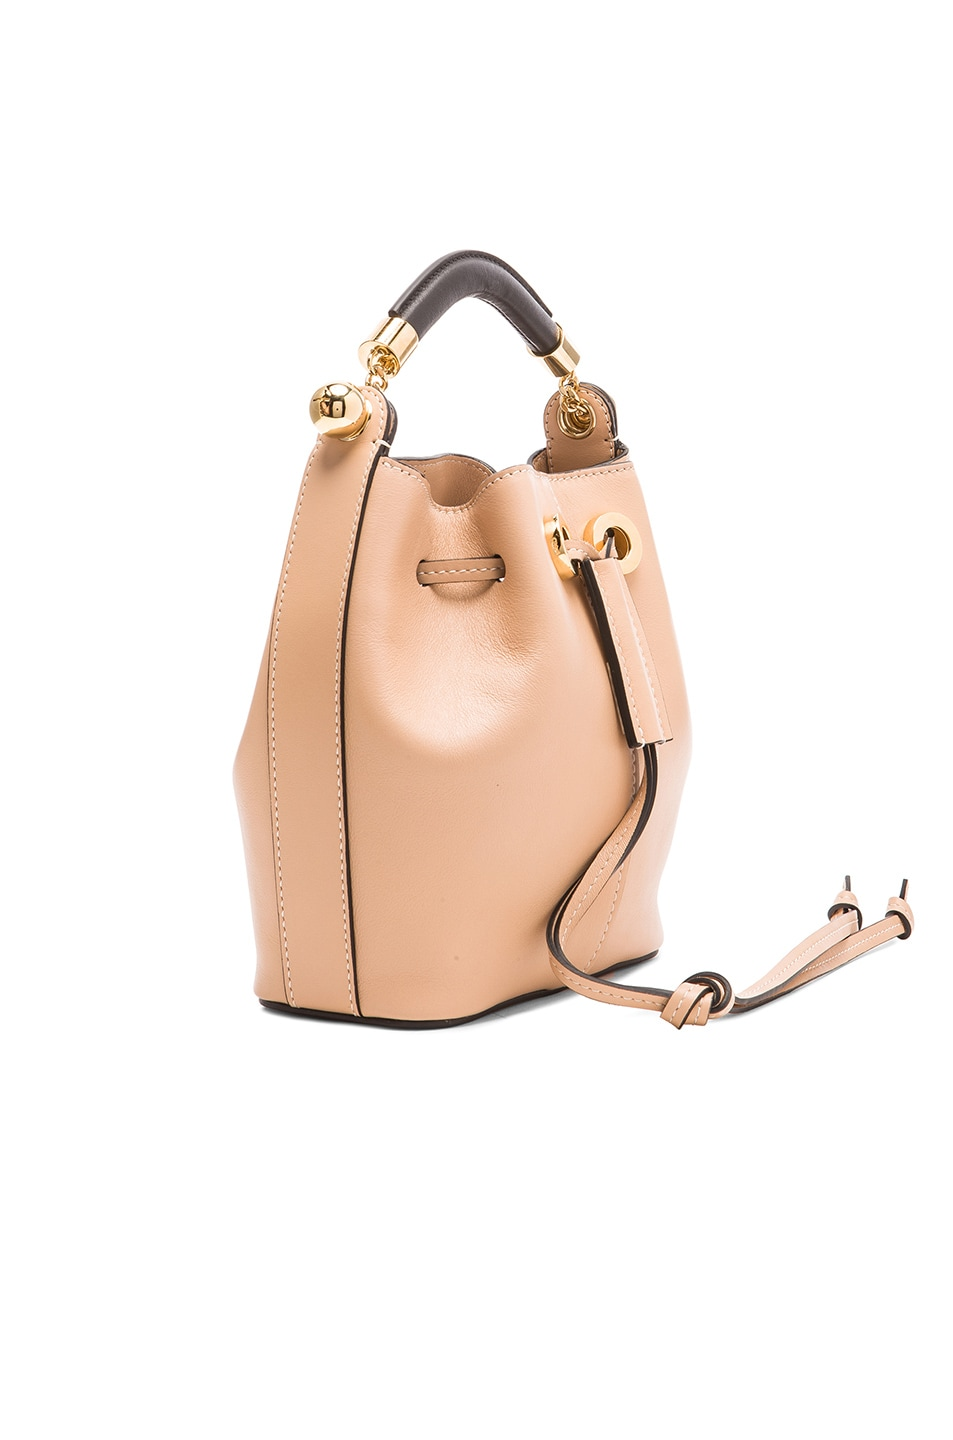 SMALL GALA BUCKET BAG IN SMOOTH red CALFSKIN